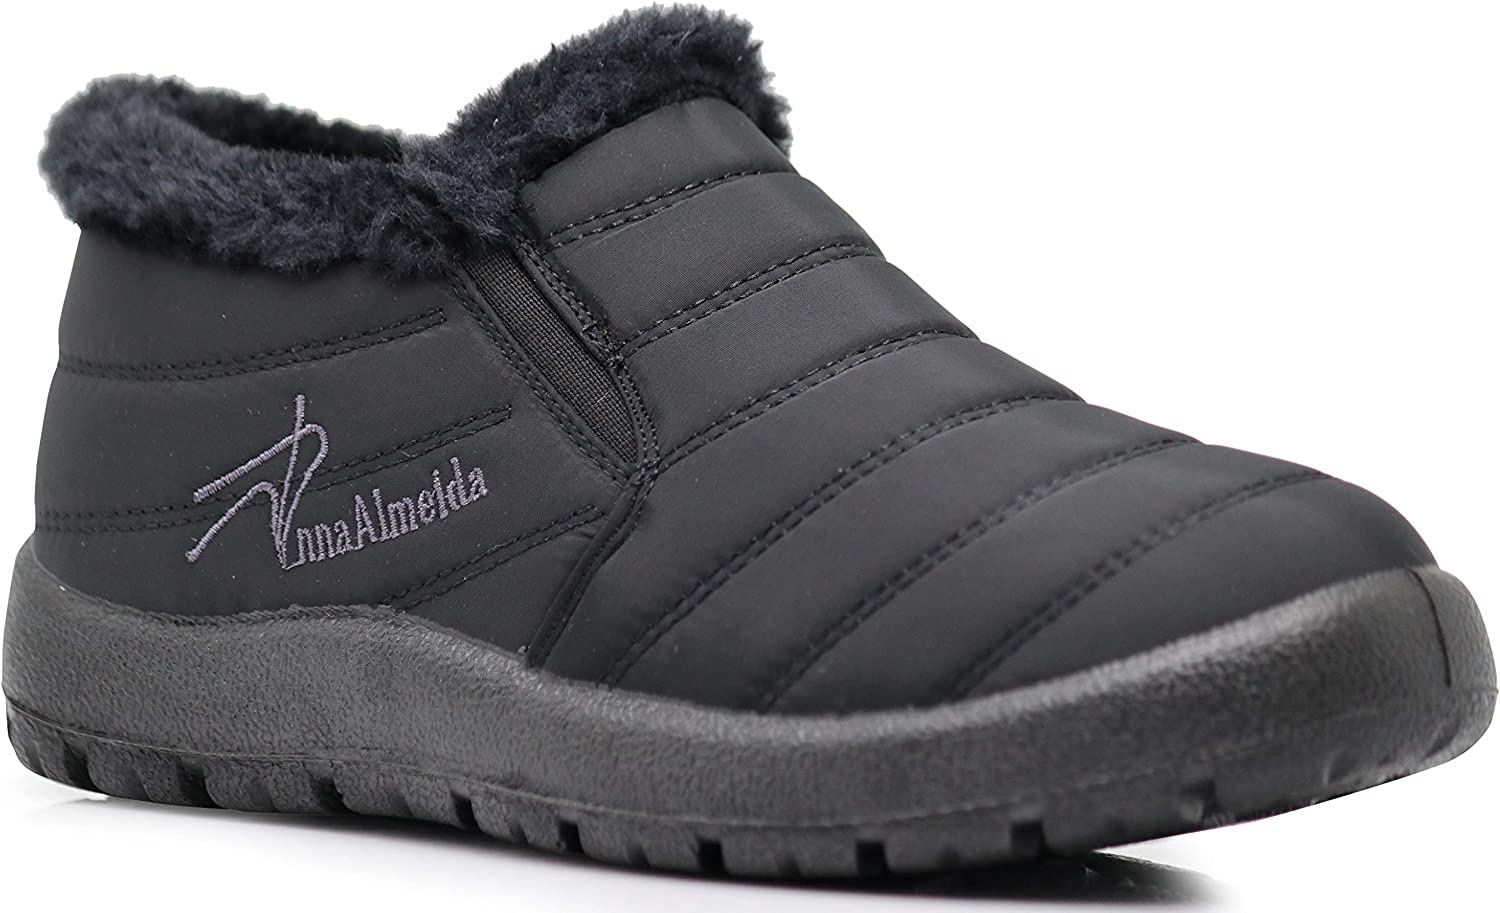 Whistler Womens Anti-Slip Winter Snow Boots with Fully Fur Lined High Ankle Top Shoe